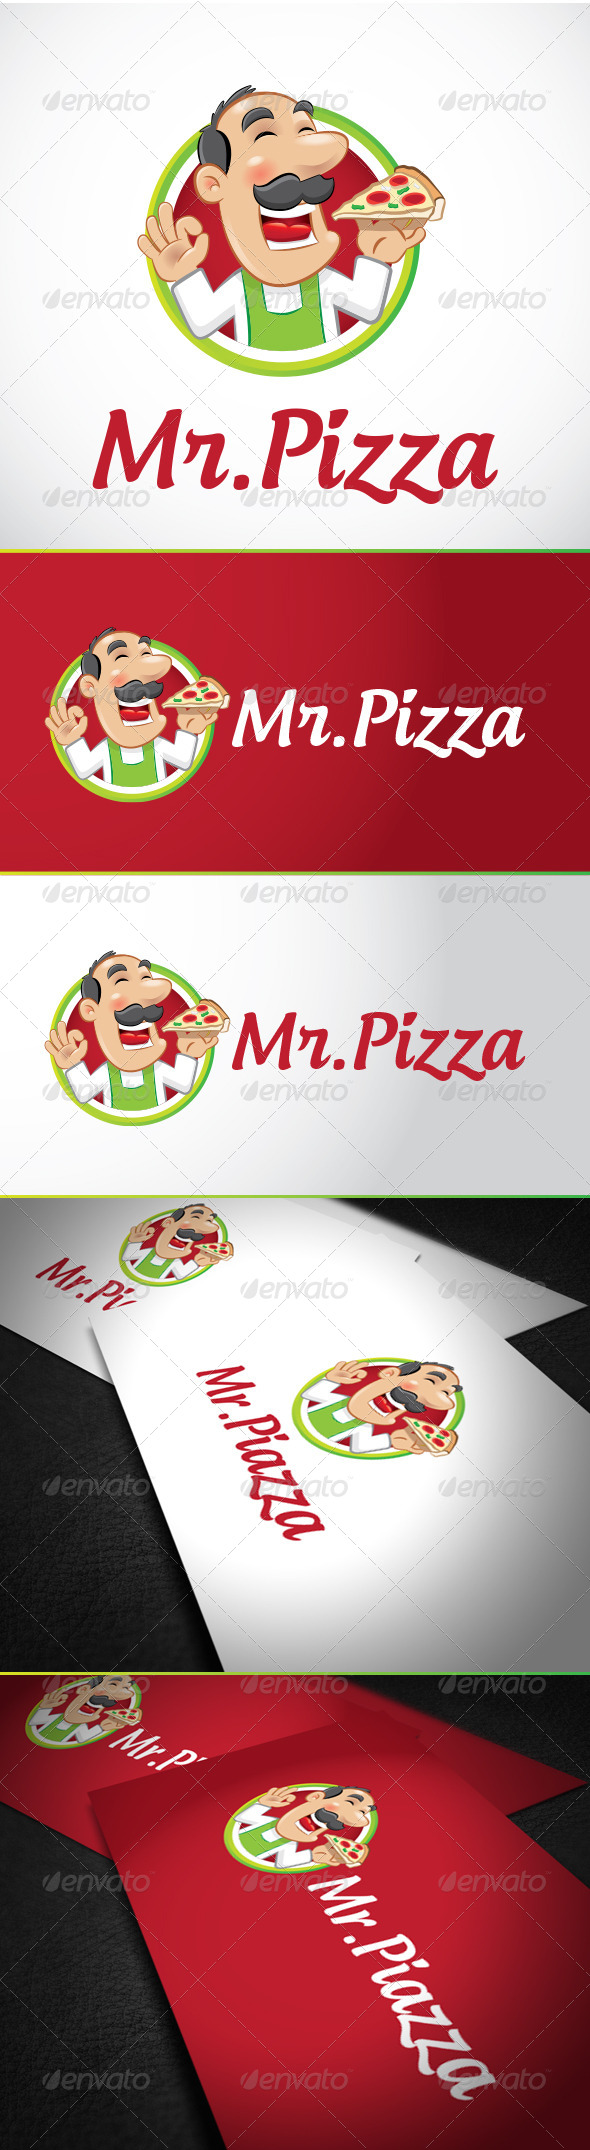 Mr Pizza Logo Template - Vector Abstract